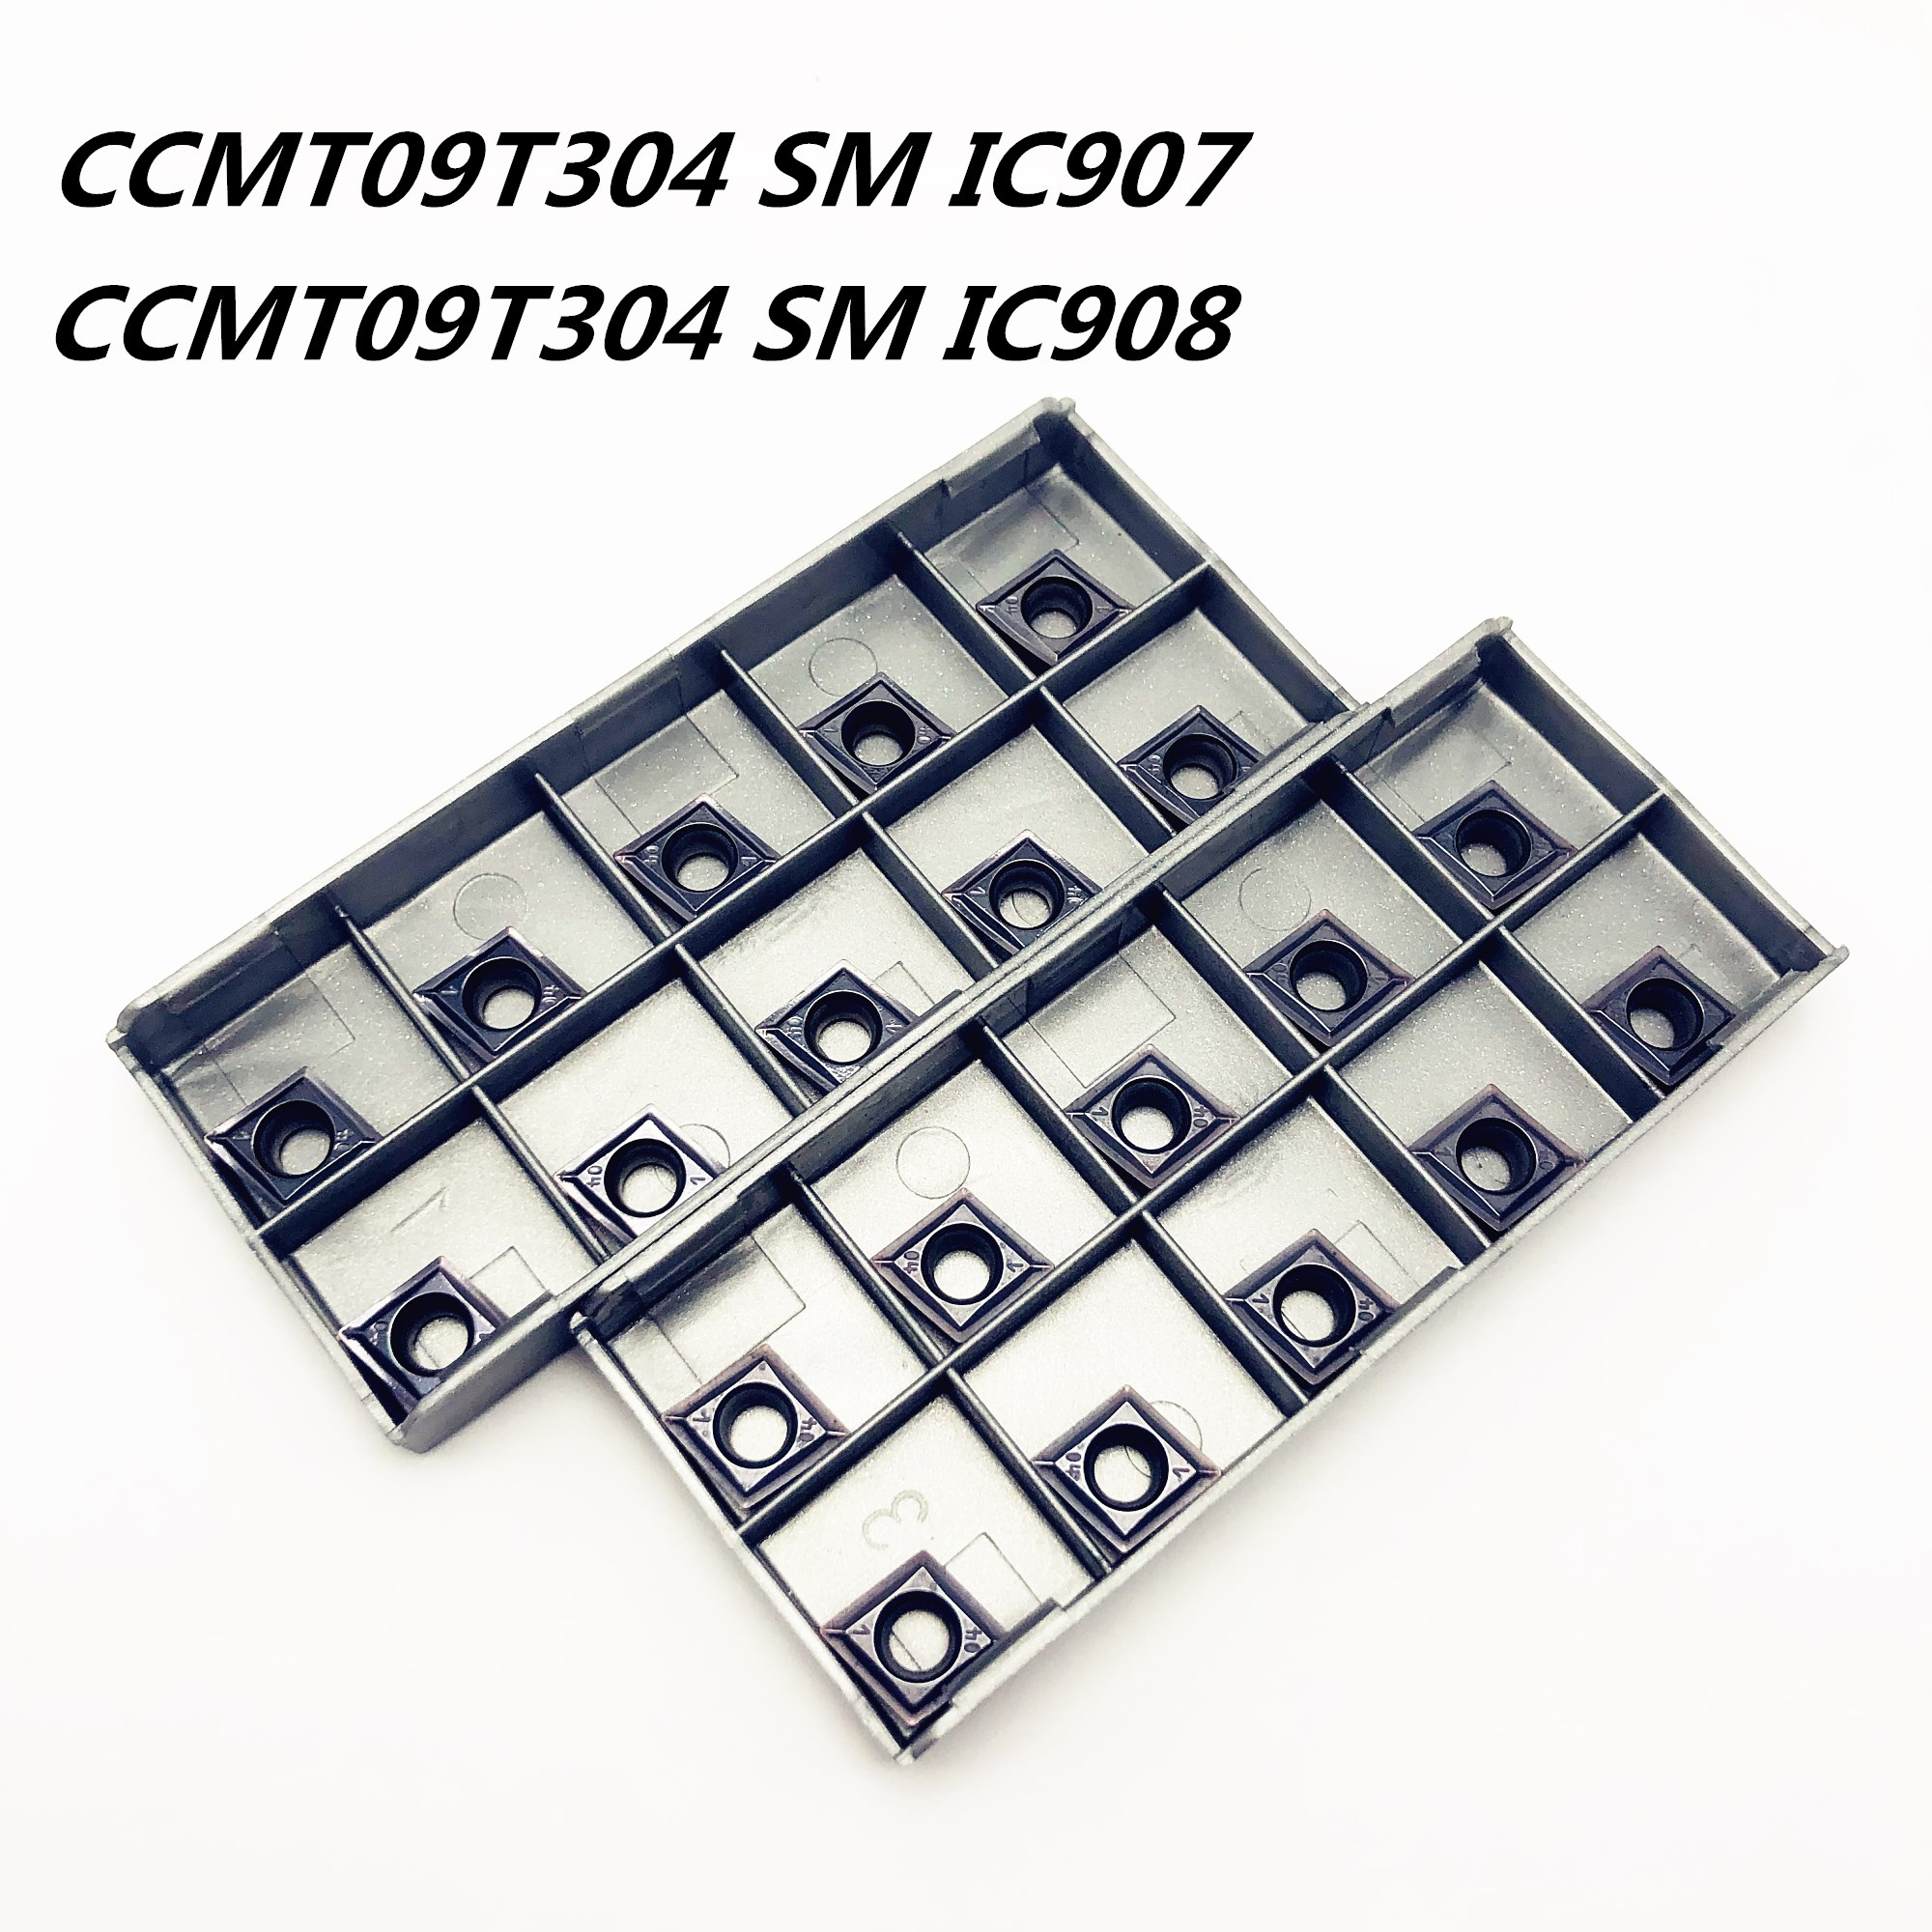 20PCS CCMT09 T304 SM IC907/908 High Precision Metal Turning Tool Carbide Insert CNC Machine Parts Tokarnyy Rotatable Cutter Head